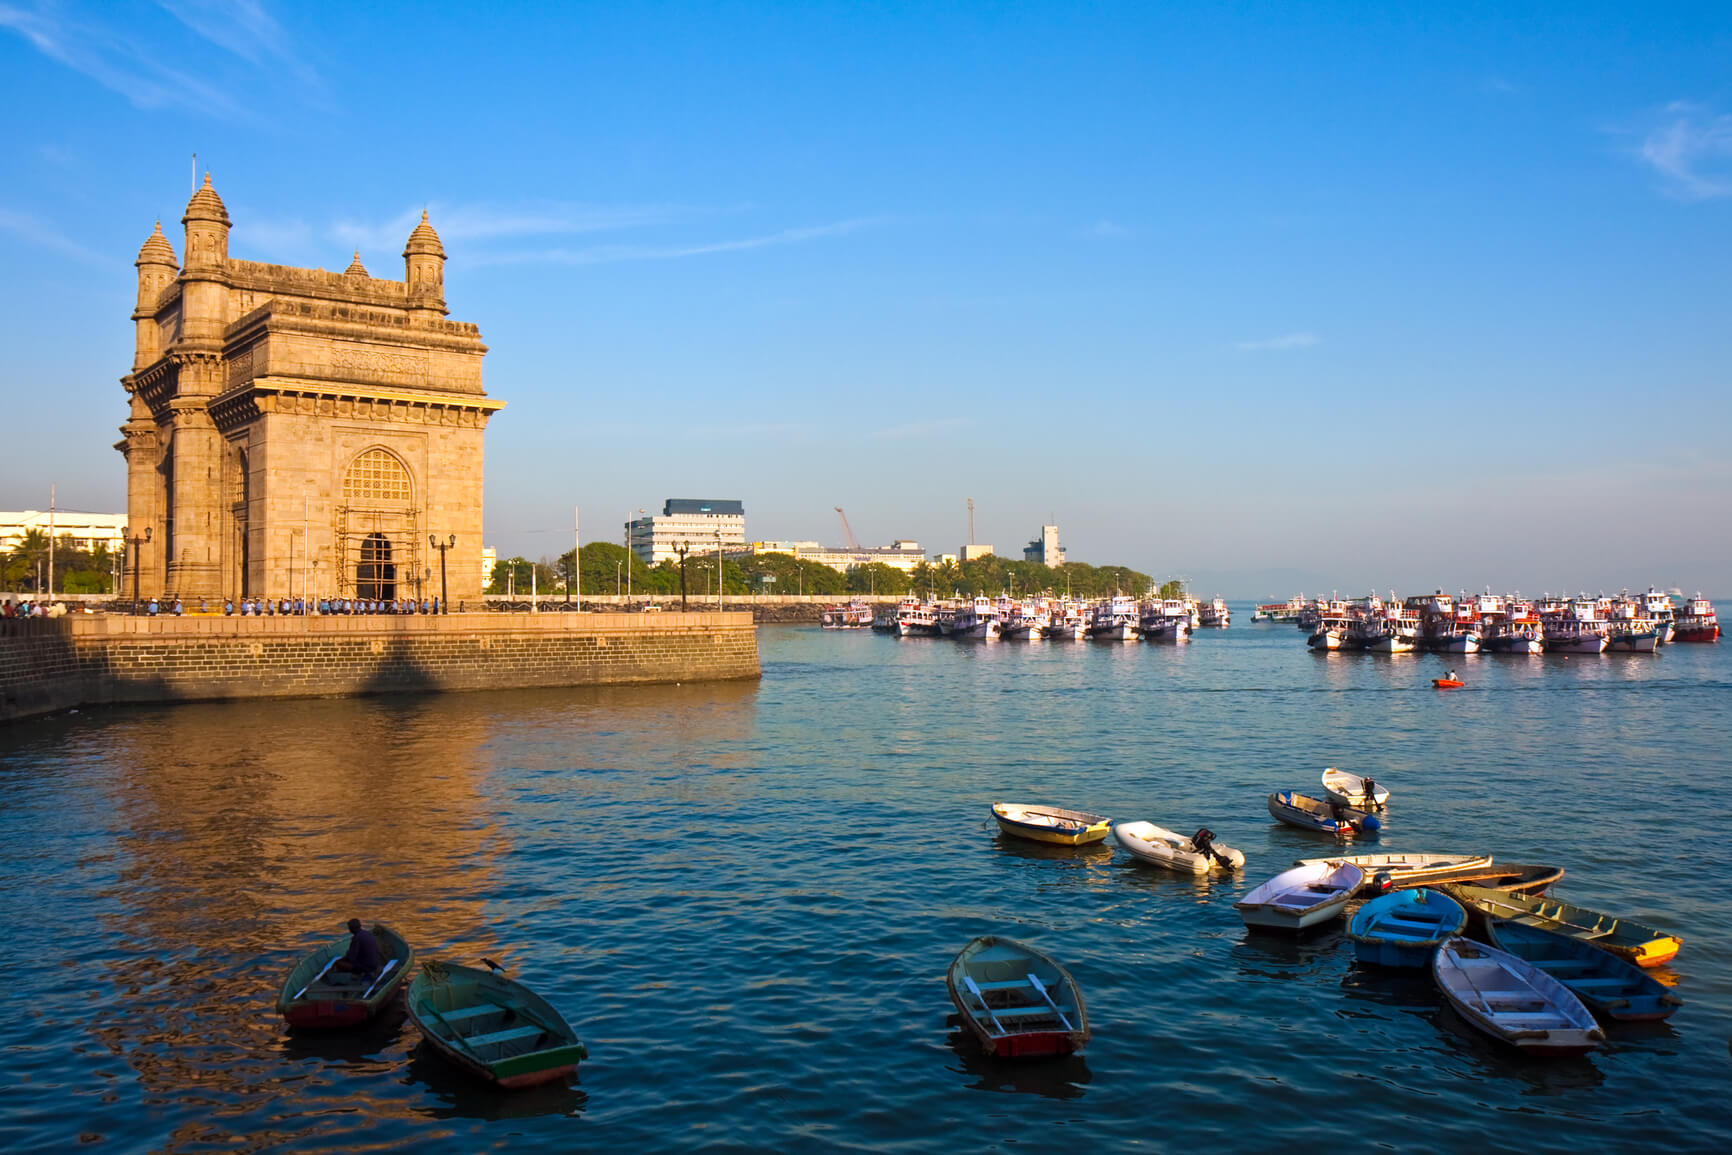 Zurich, Switzerland to Mumbai, India for only €339 roundtrip